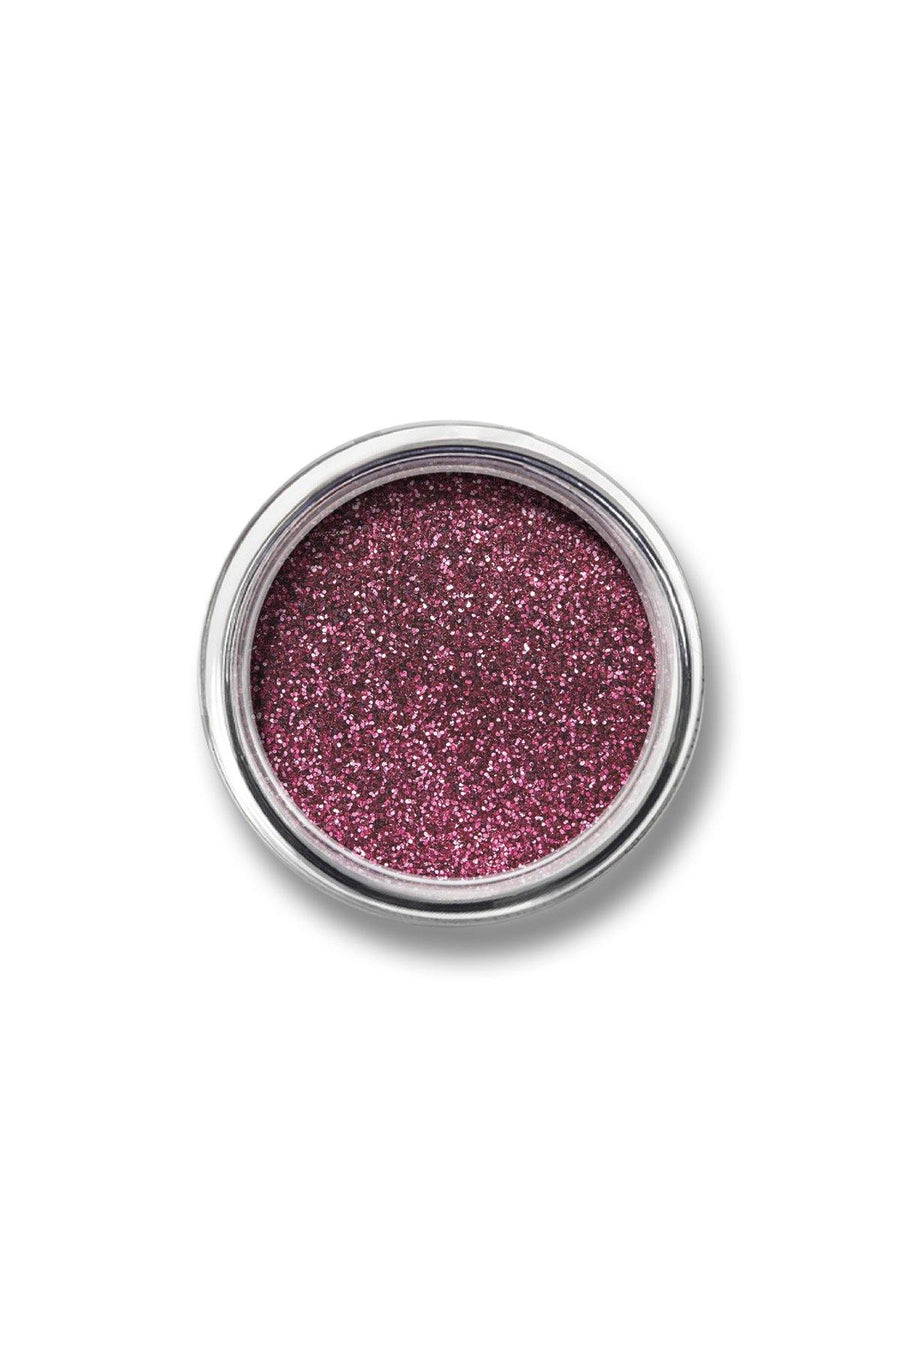 Glitter Powder #11 - Deep Rose Pink